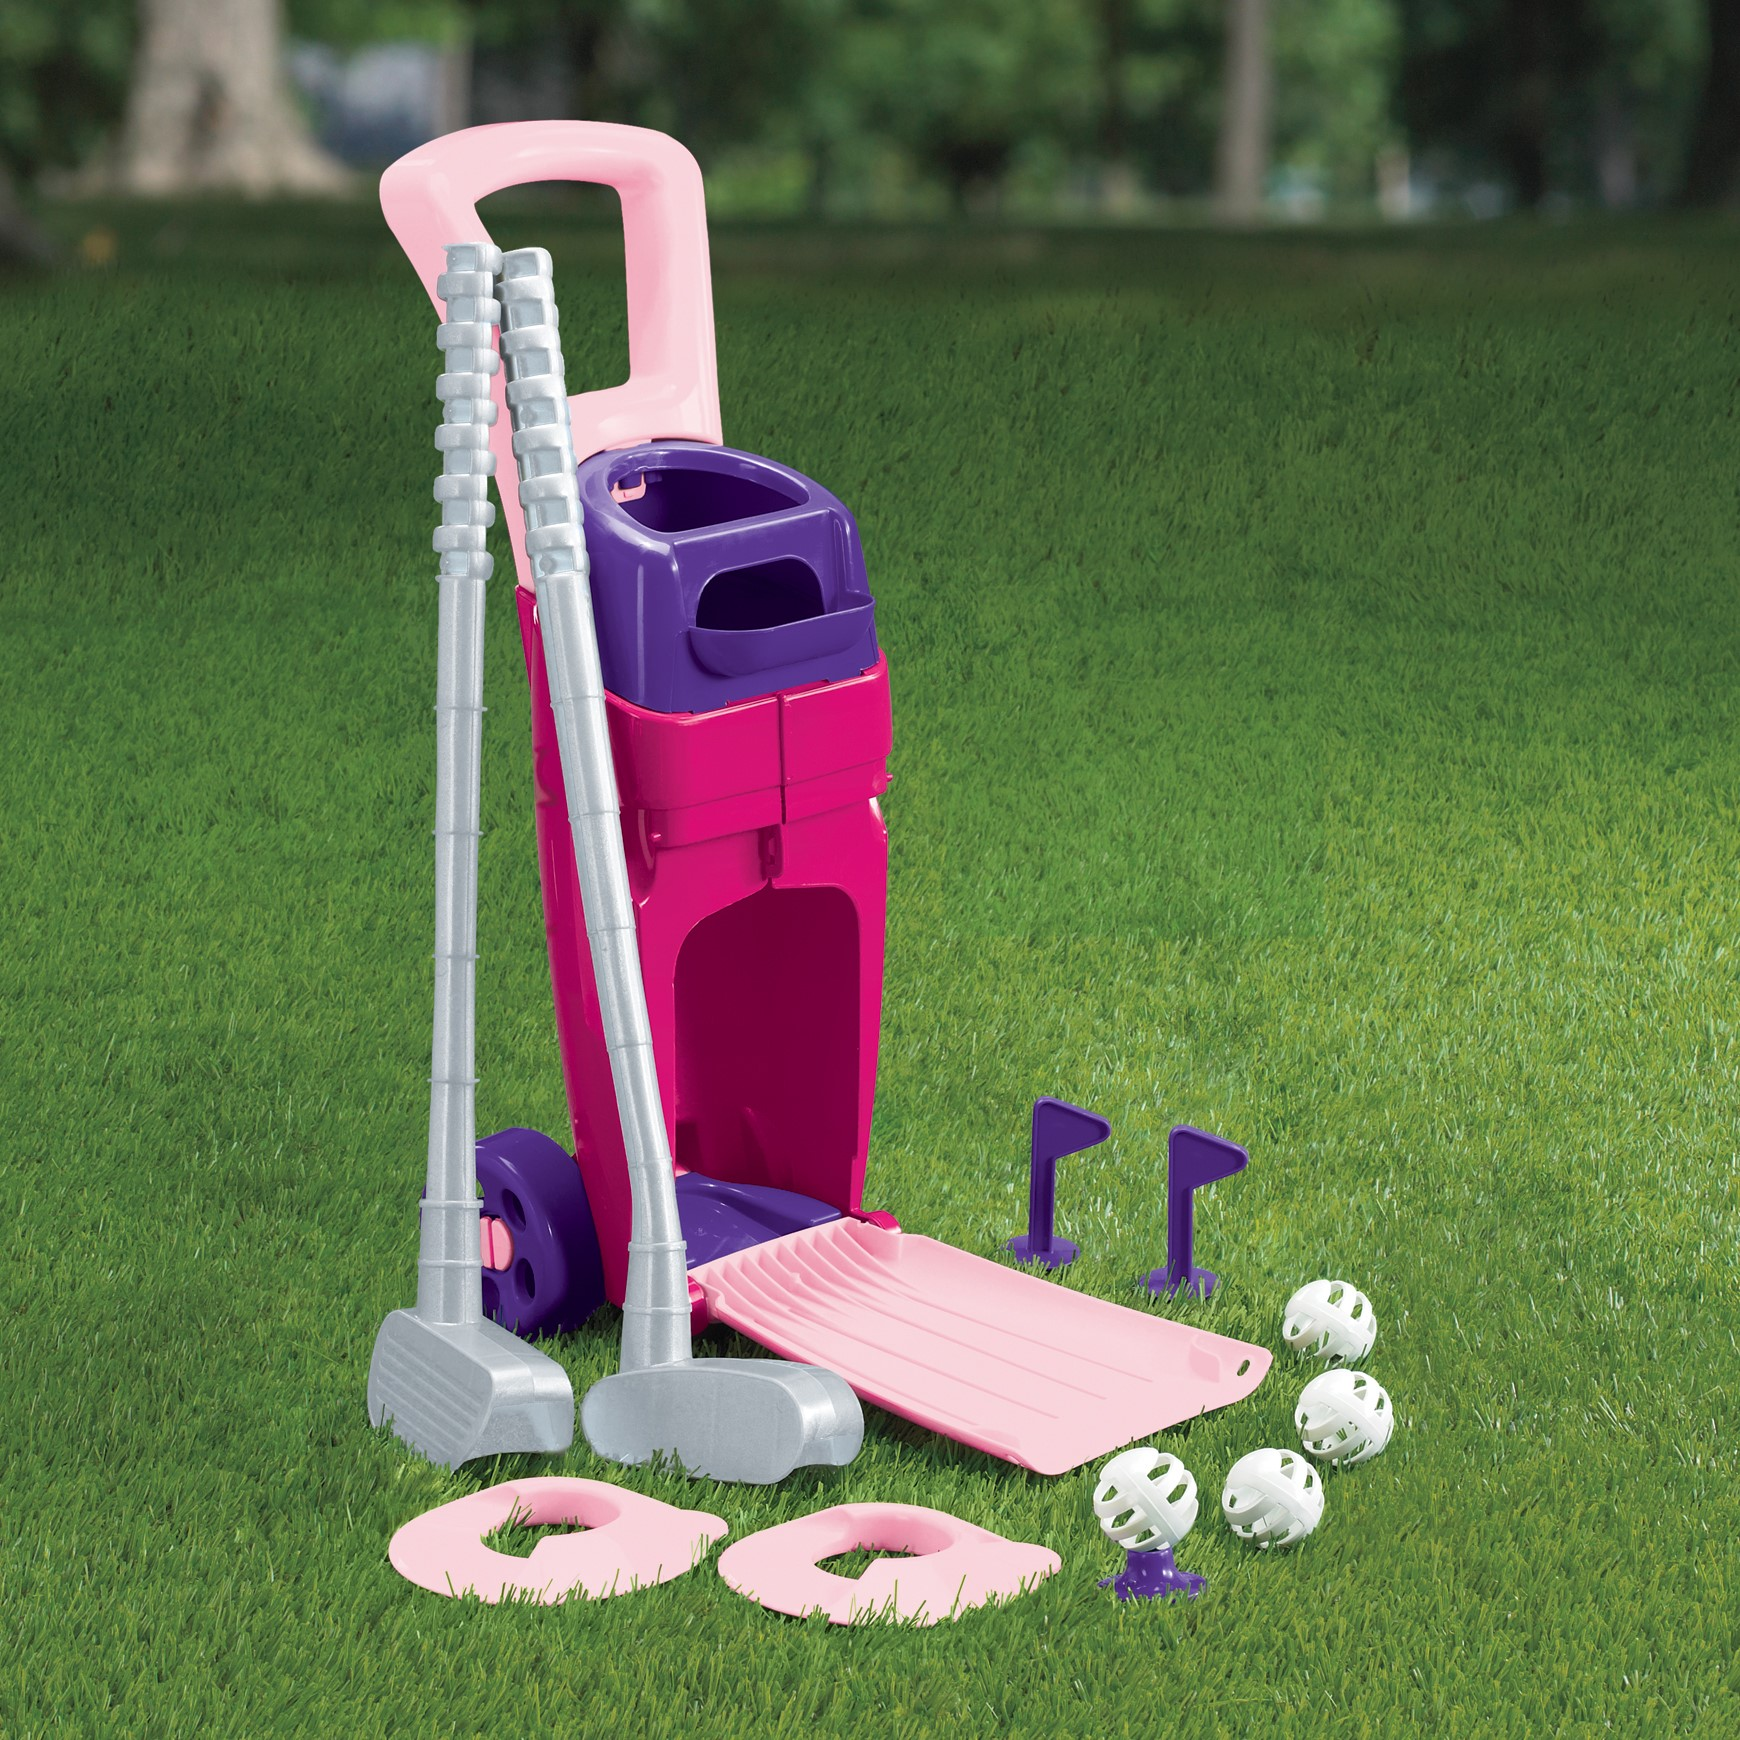 American Plastic Toys Junior Pro Girl's Golf Set by Generic